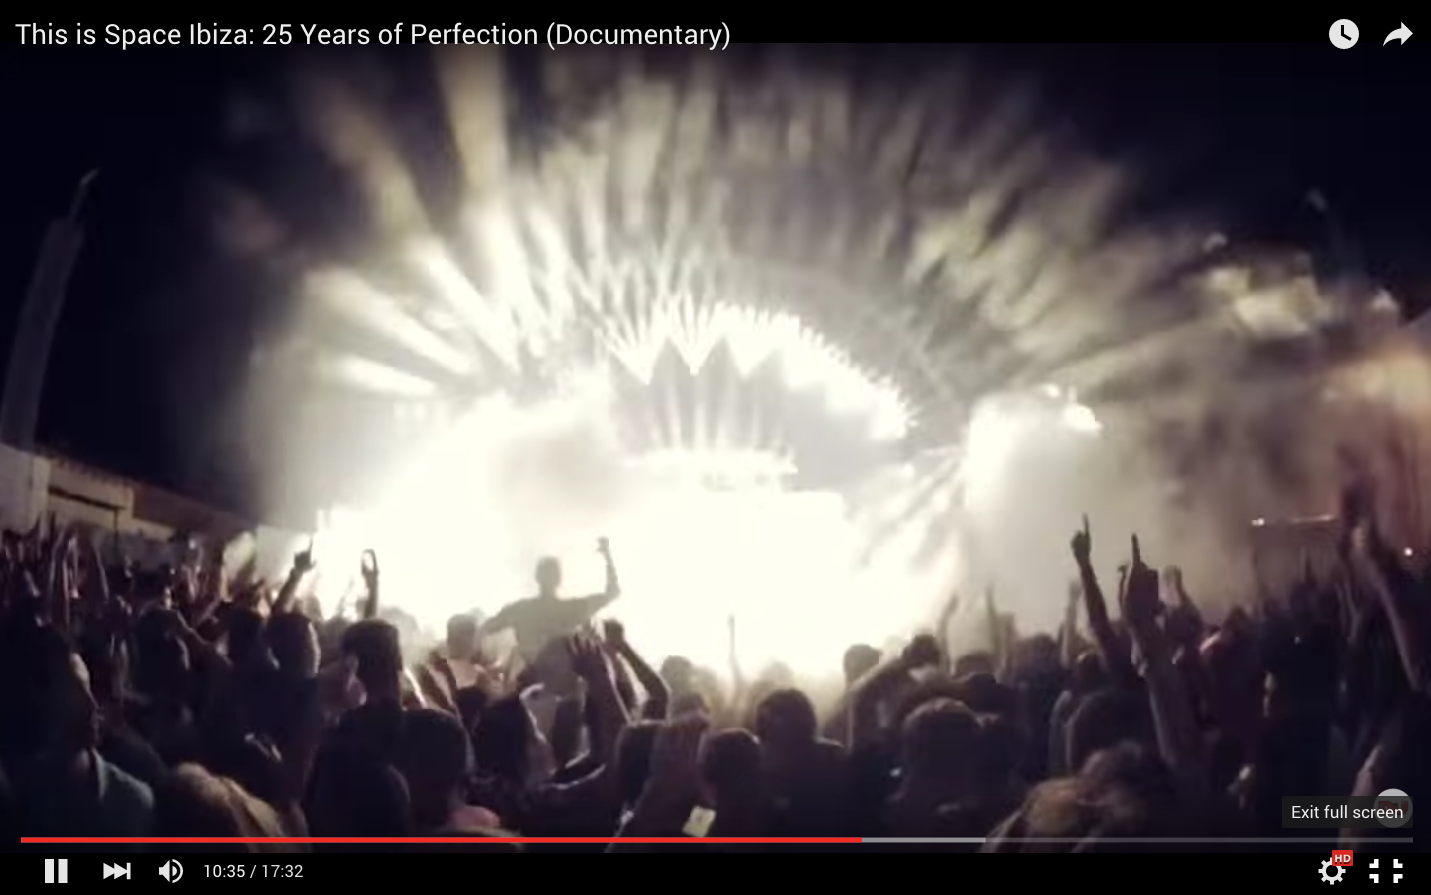 This is Space Ibiza: 25 Years of Perfection Documentary - TechnoBabes